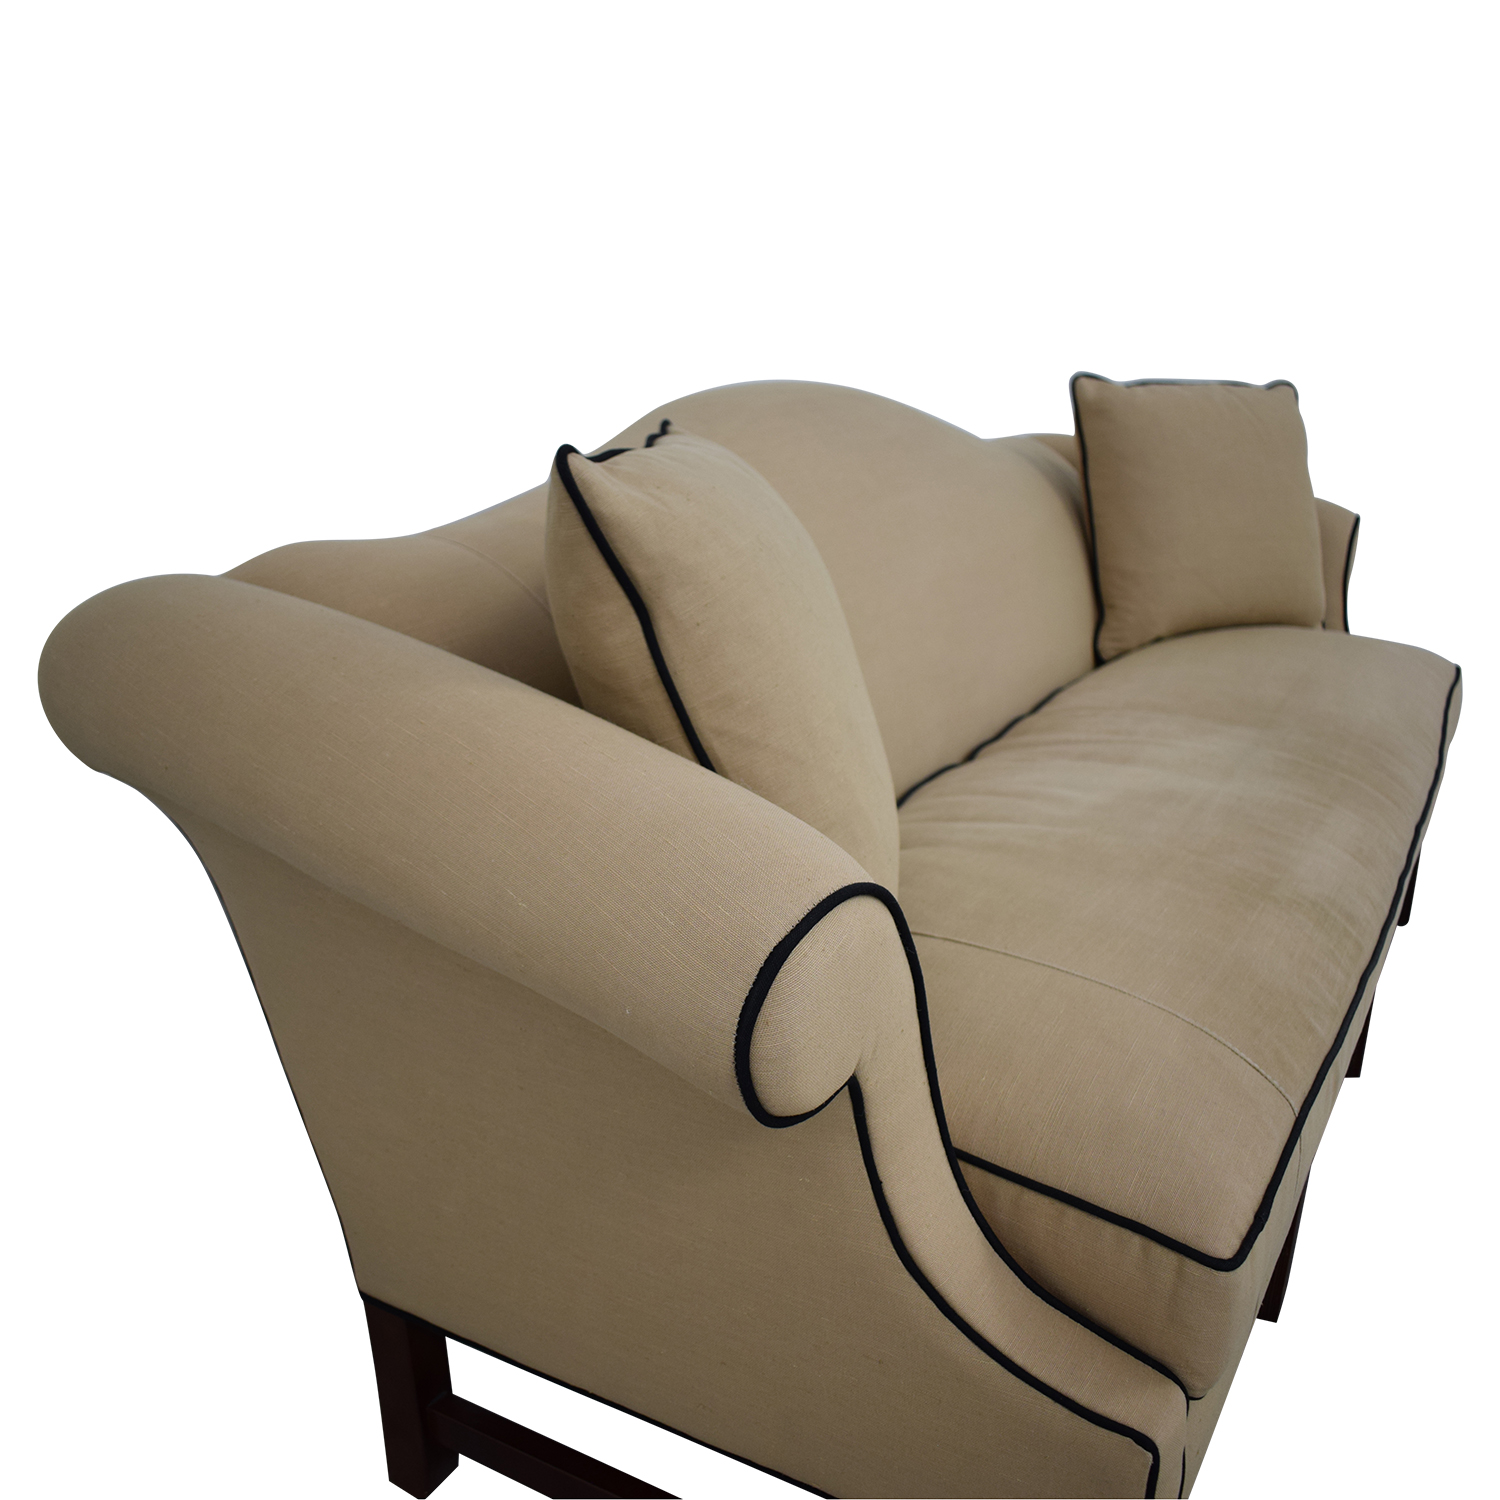 Upholstered Camel Back Sofa / Sofas